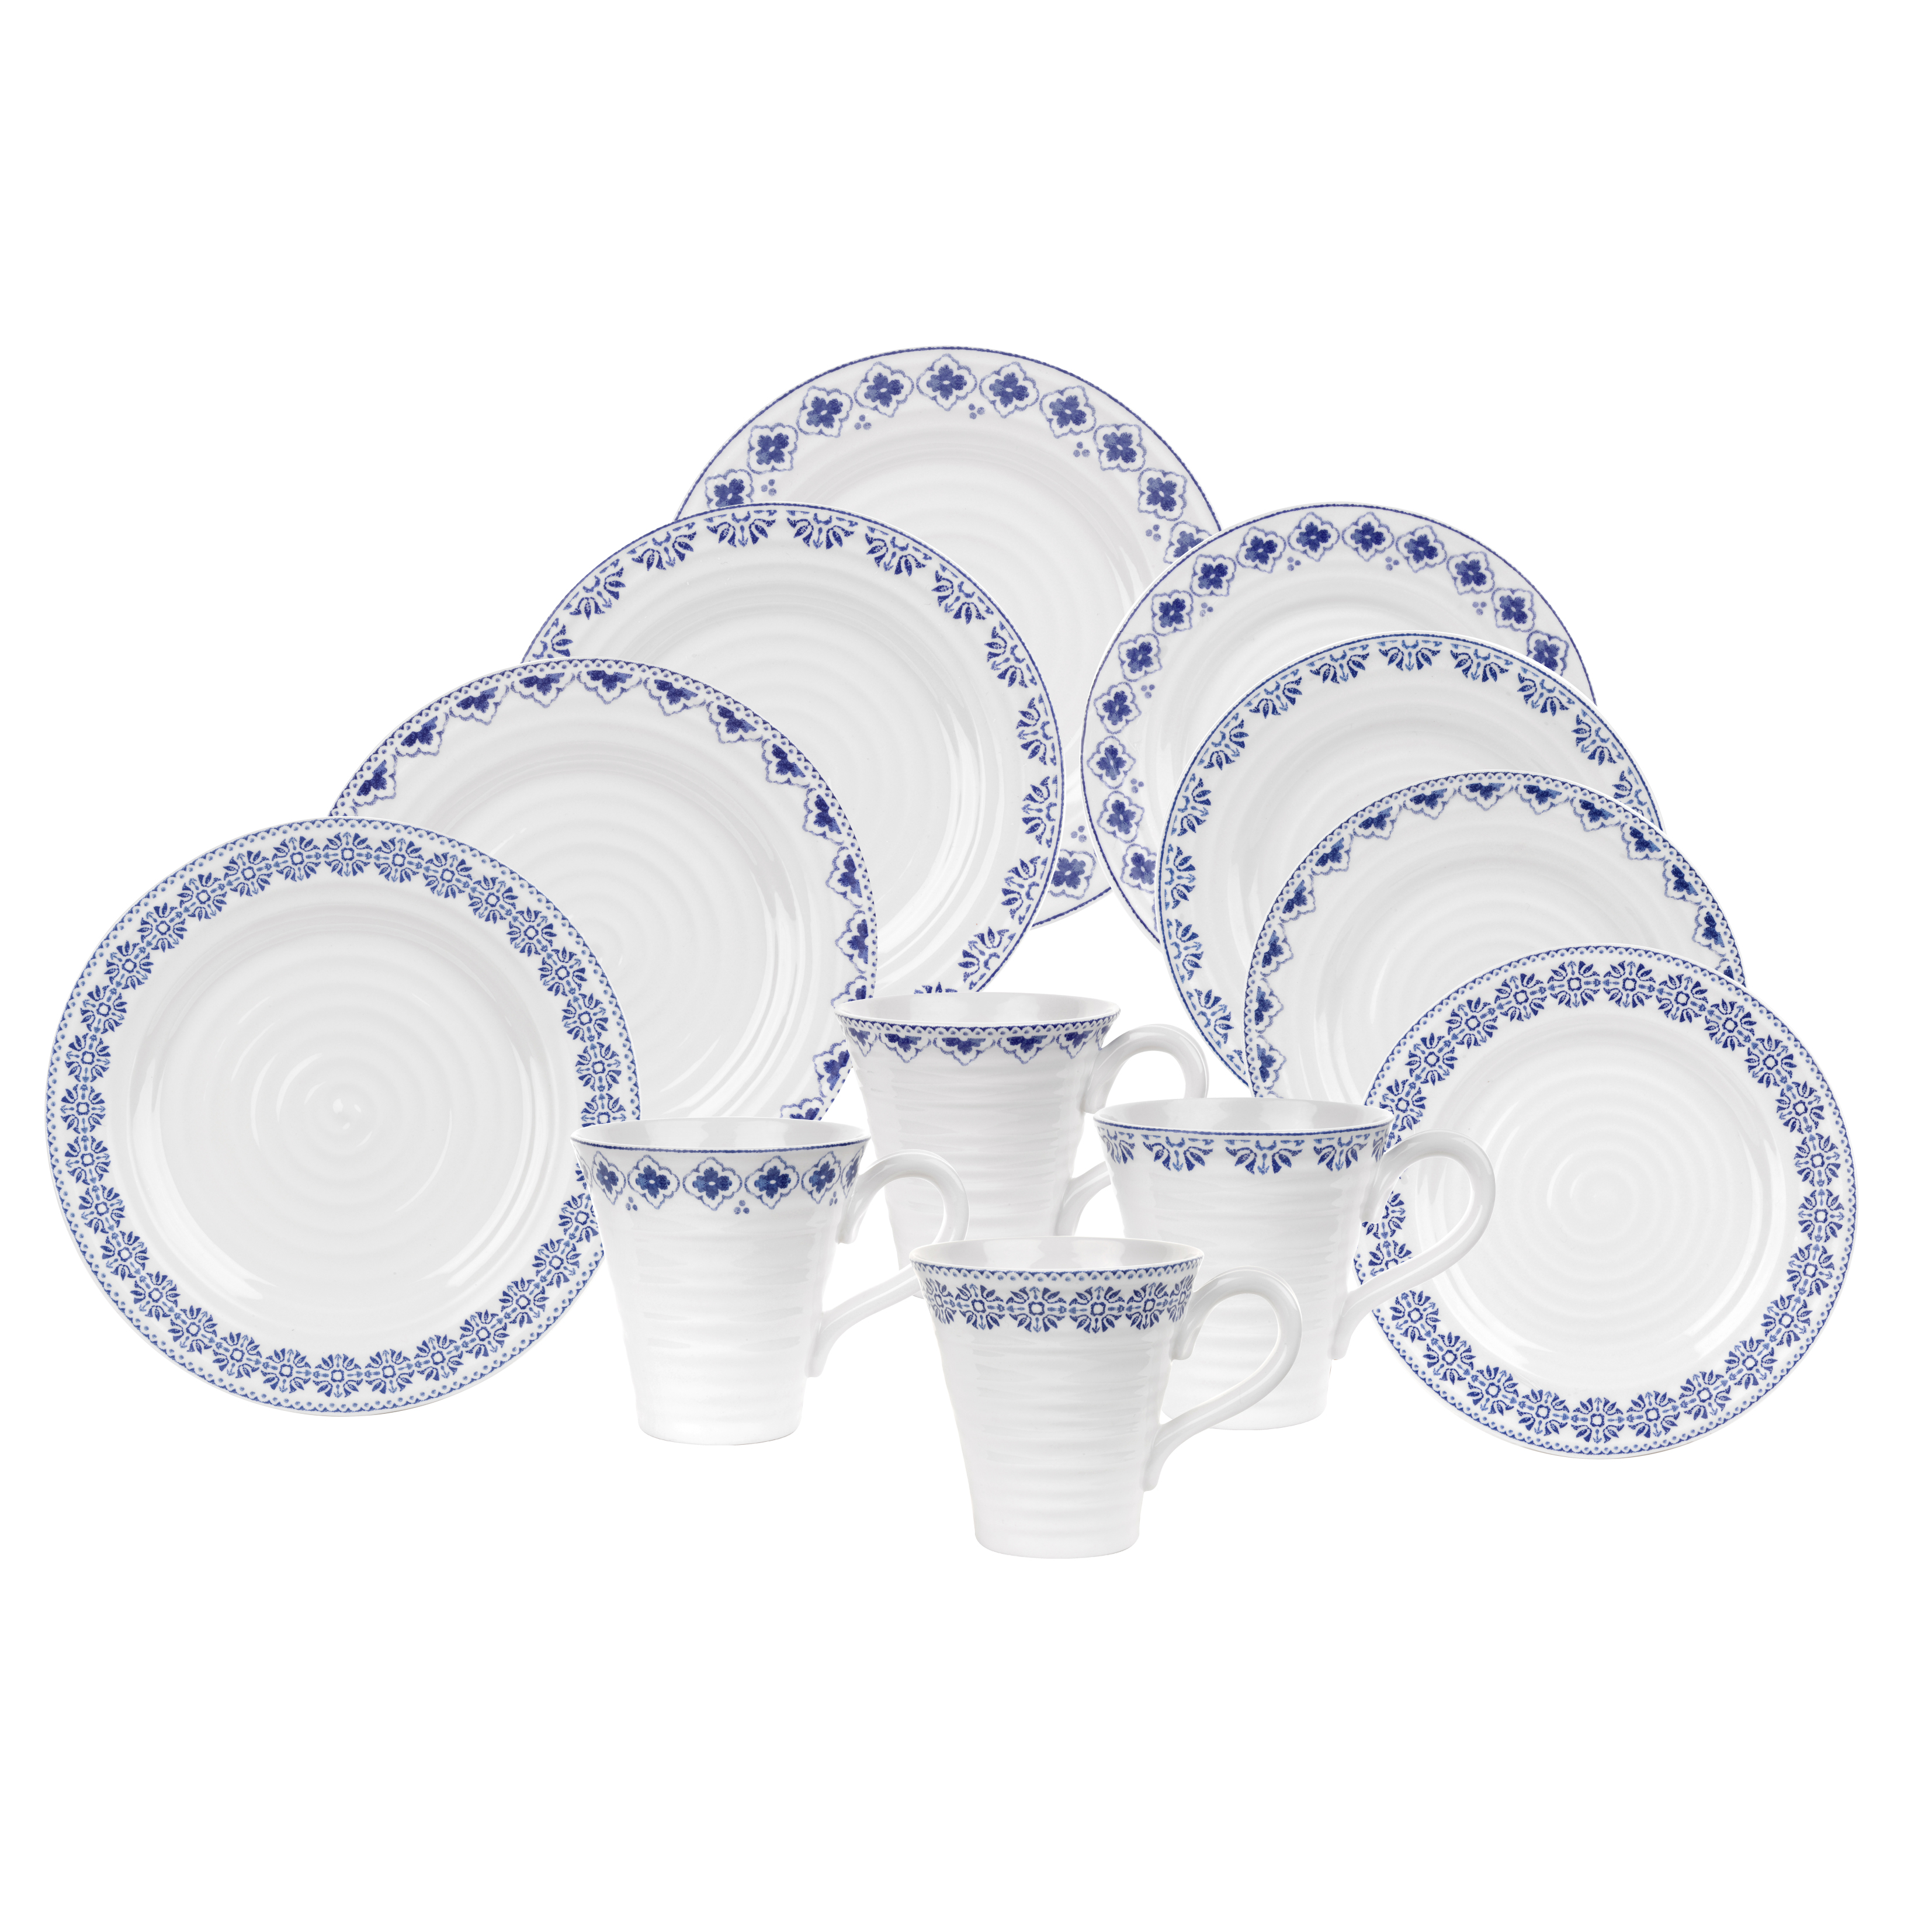 CPU77467-XP 12PC Sophie Conran Blue and White  sc 1 st  Kitchenware News & Introducing Sophie Conran for Portmeirion Blue \u0026 White Collection ...